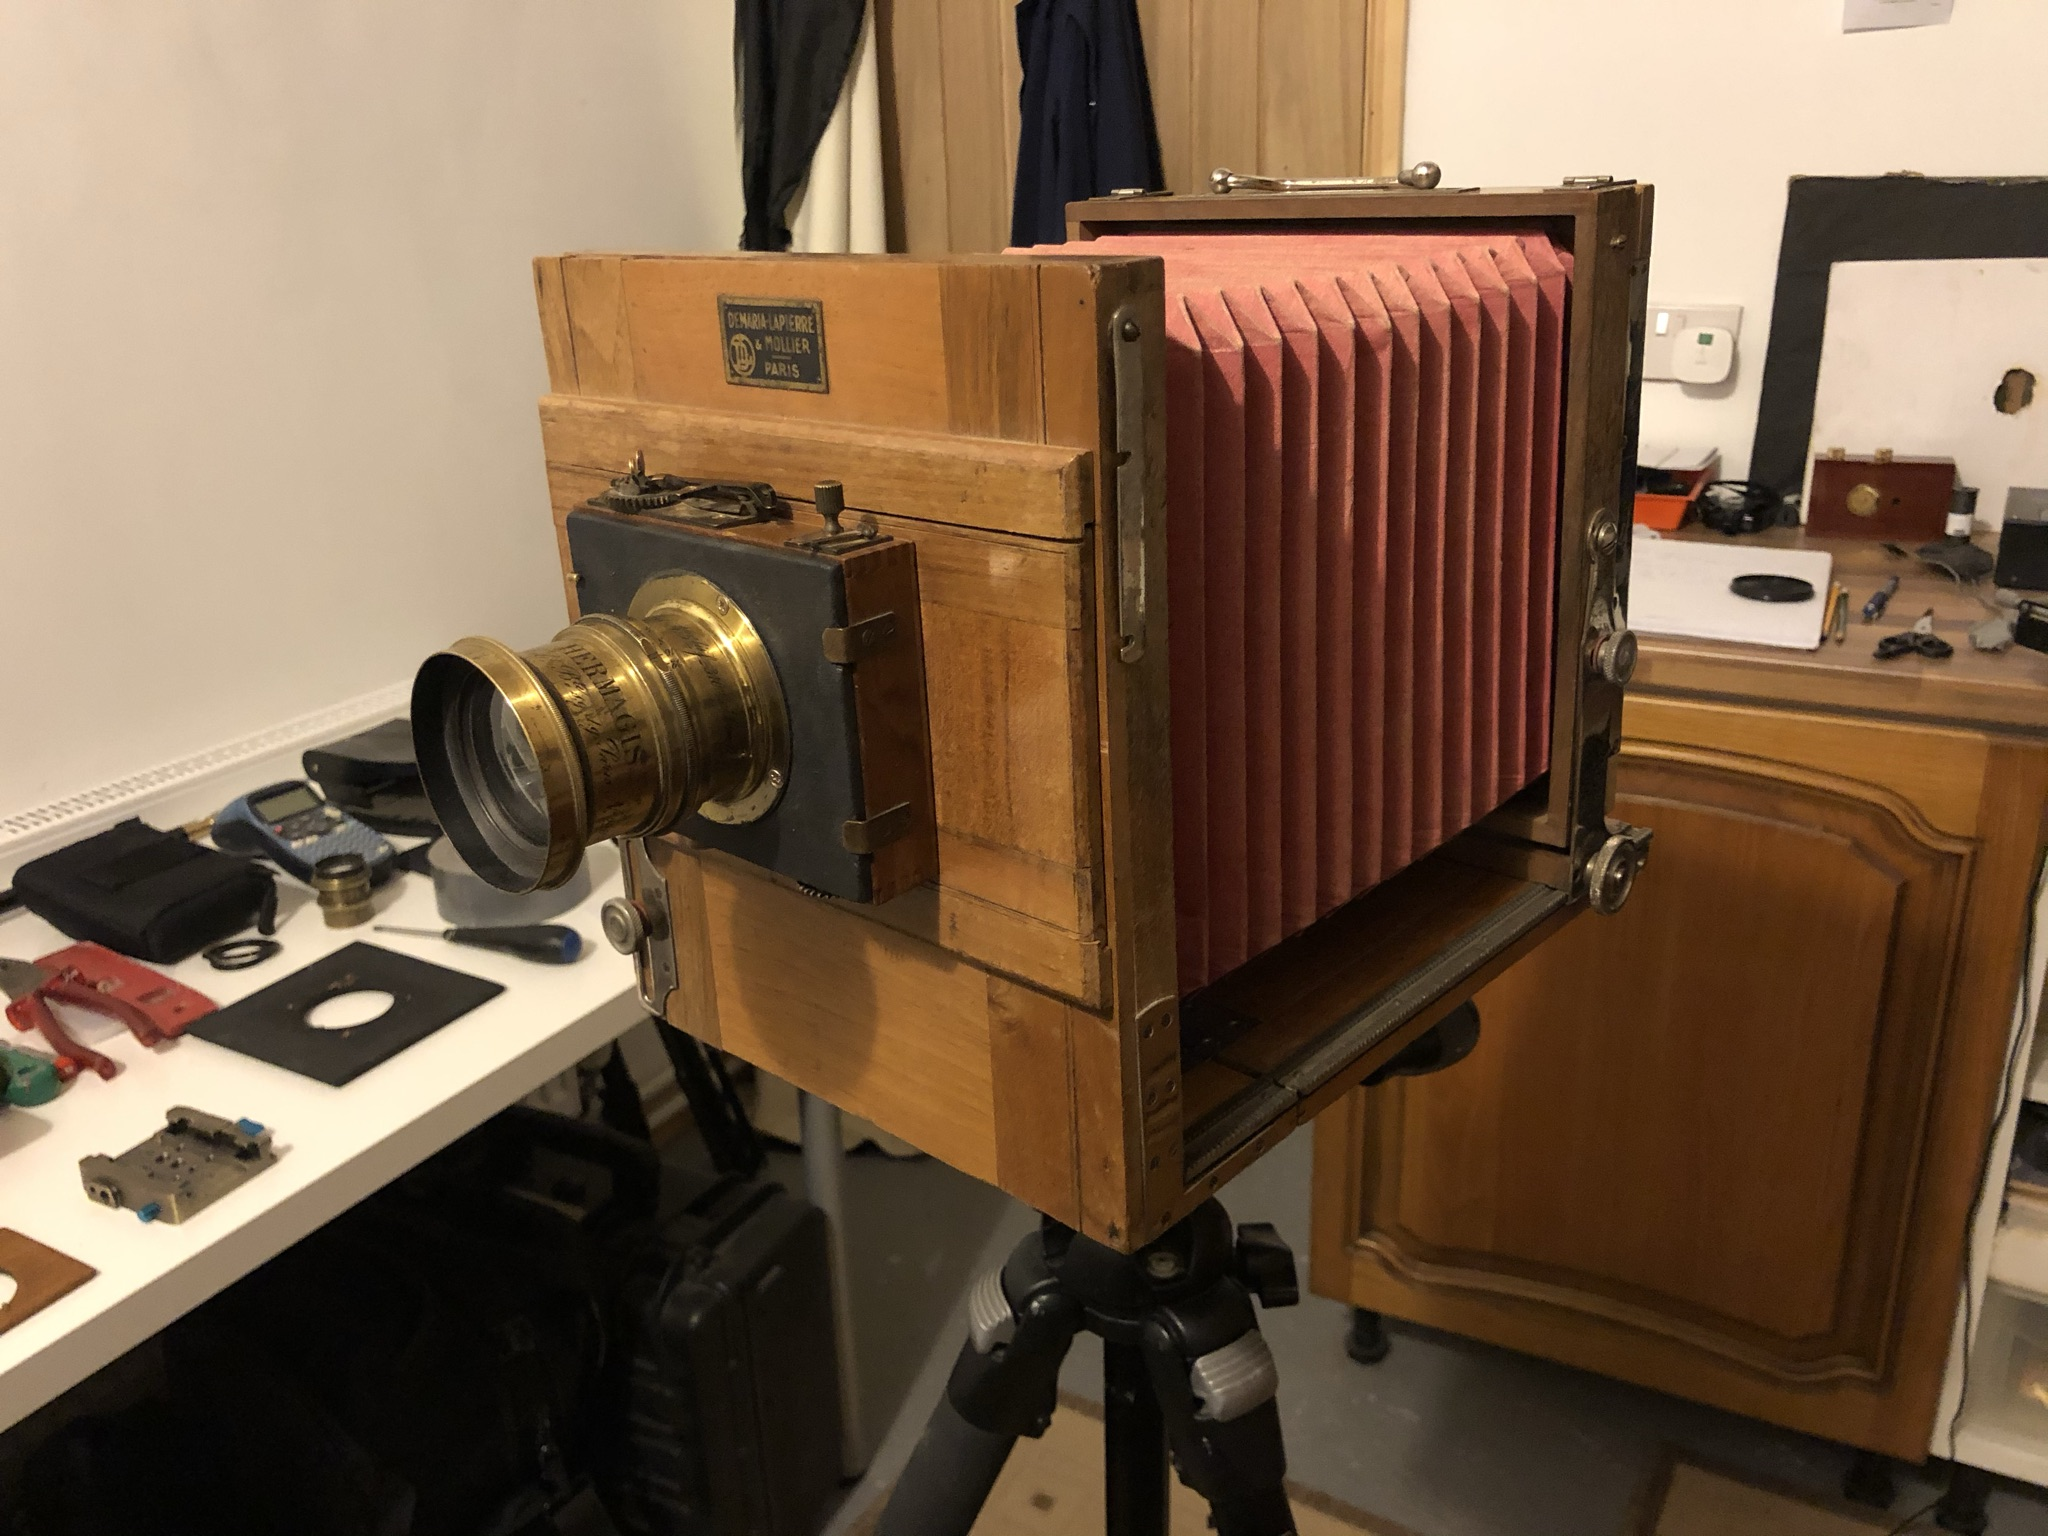 Shows the 5x7 camera